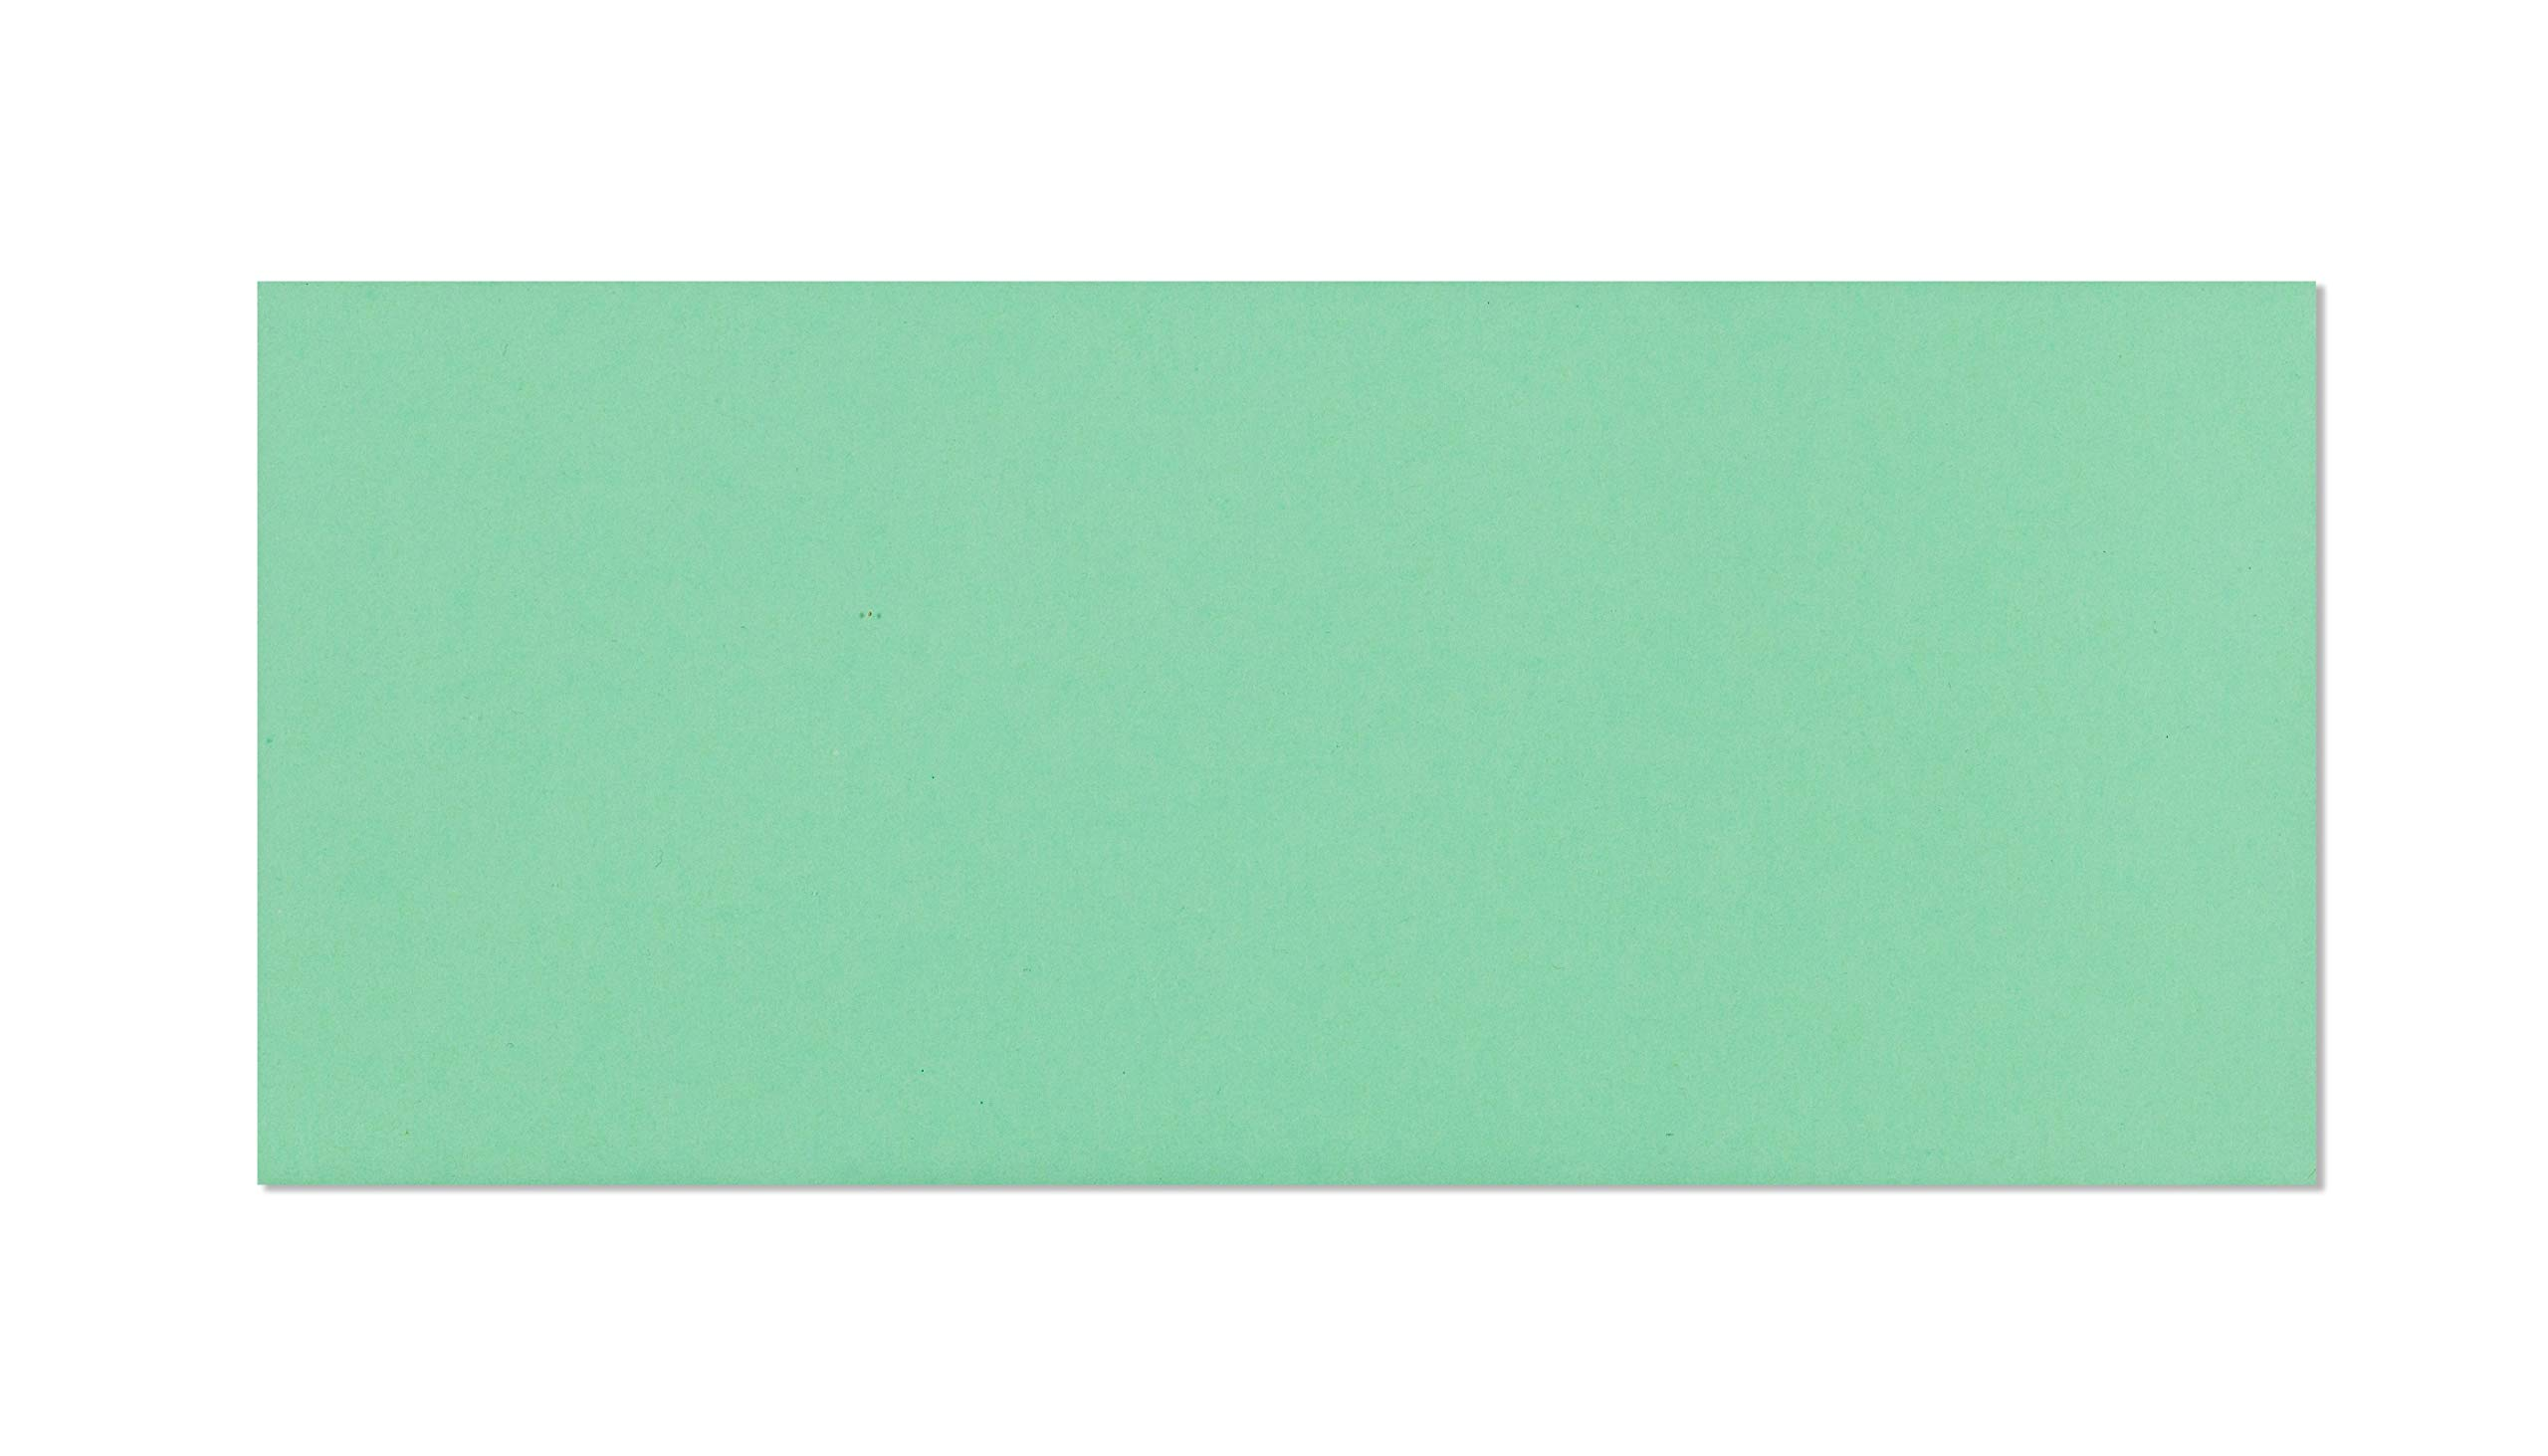 #10 Plain Envelopes Green - Invoice Envelopes for Offices - Letter Sized Envelopes 4 1 8 x 9 1 2 Inch - Vellum Finish Sub 24/60 - Pack of 500 No 10 Envelopes